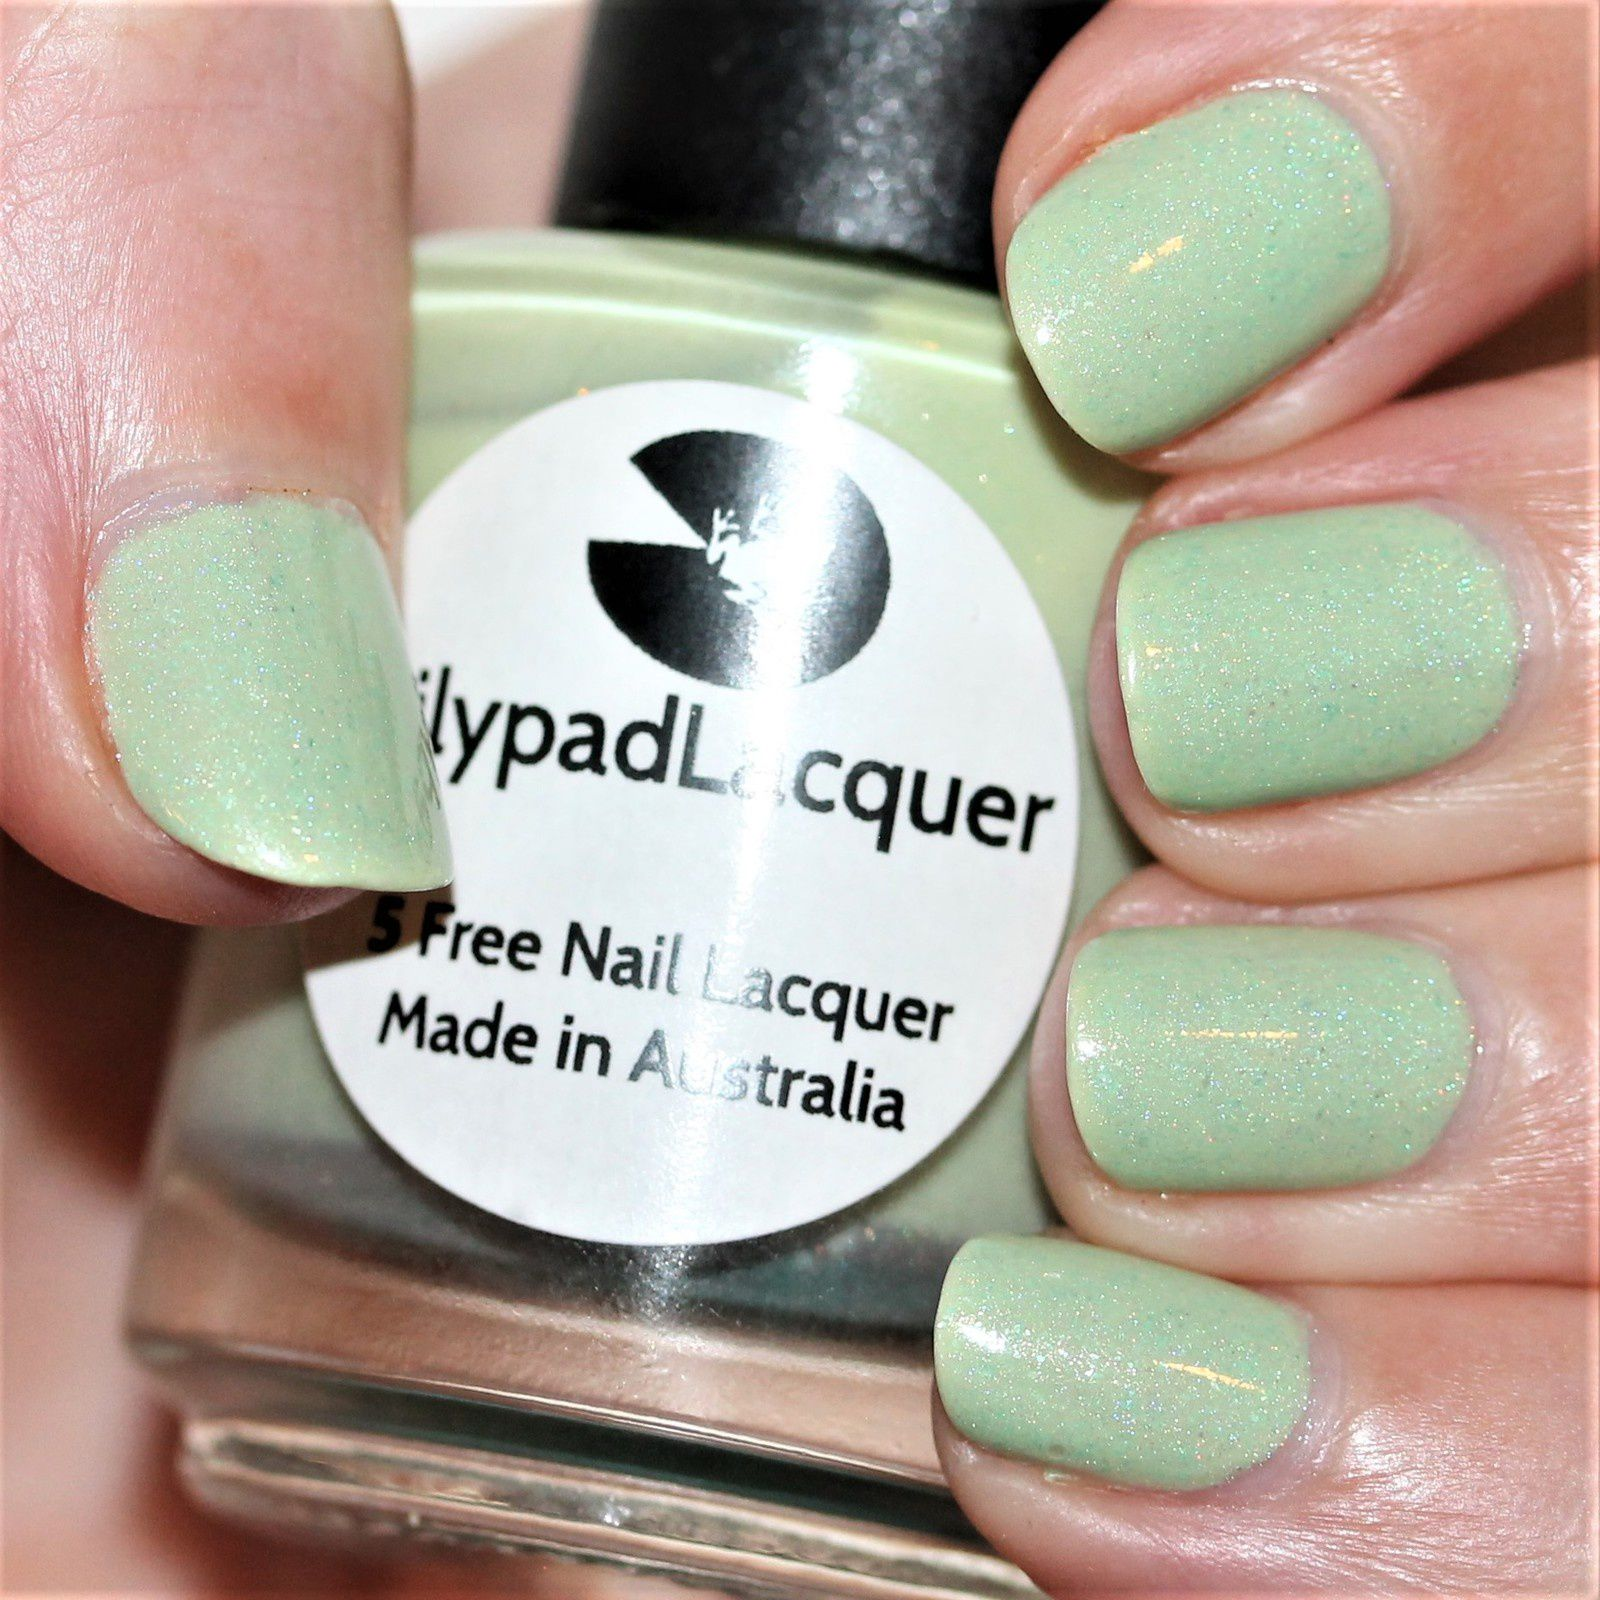 Essie Protein Base Coat / Lilypad Lacquer Minty / Lilypad Lacquer Crystal Clear Top Coat